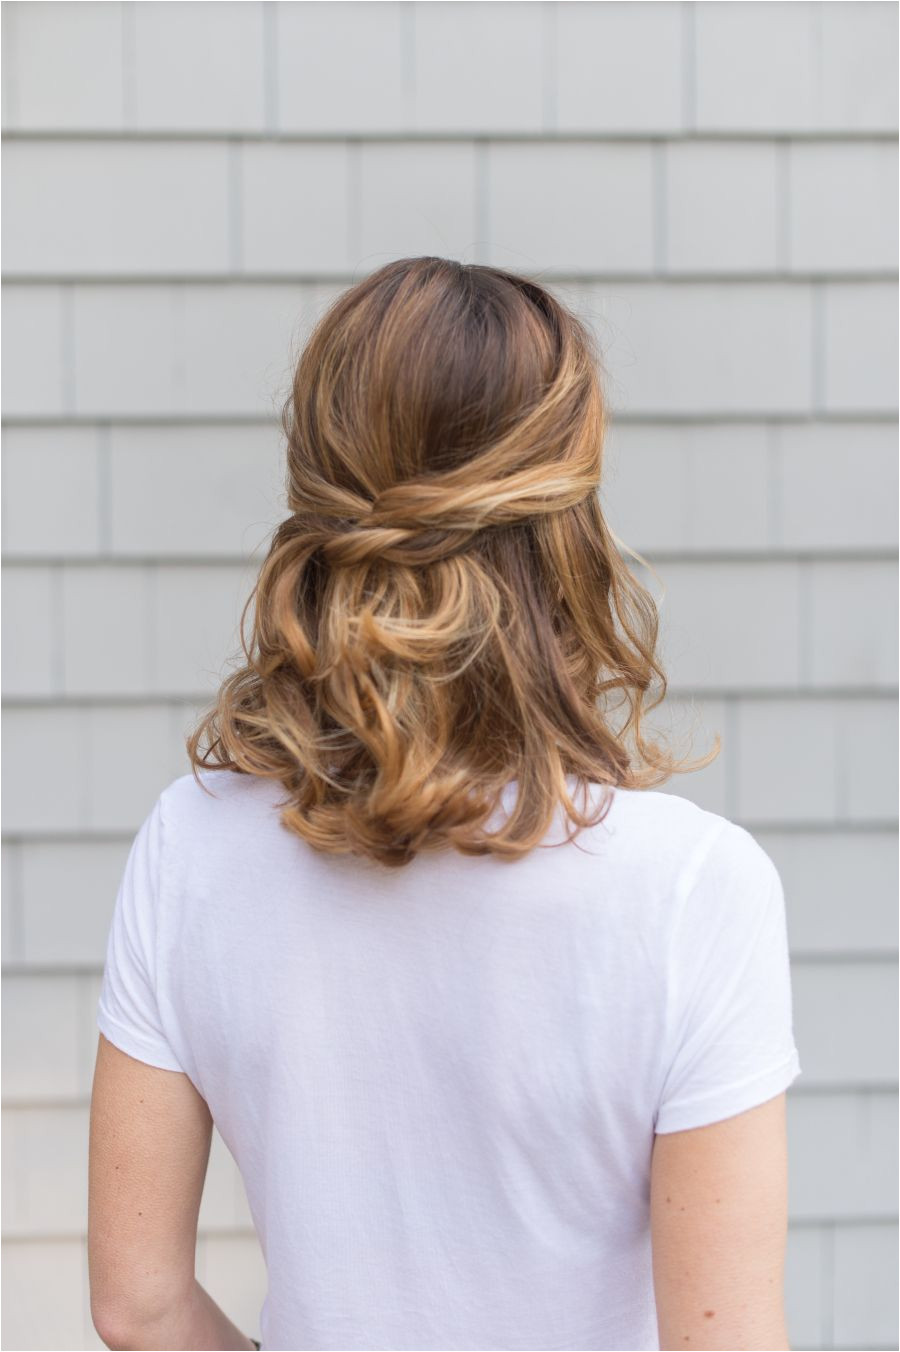 With the utility of a ponytail and the soft femininity of having your hair down this half up half down hairstyle is as perfect for every day life as it is